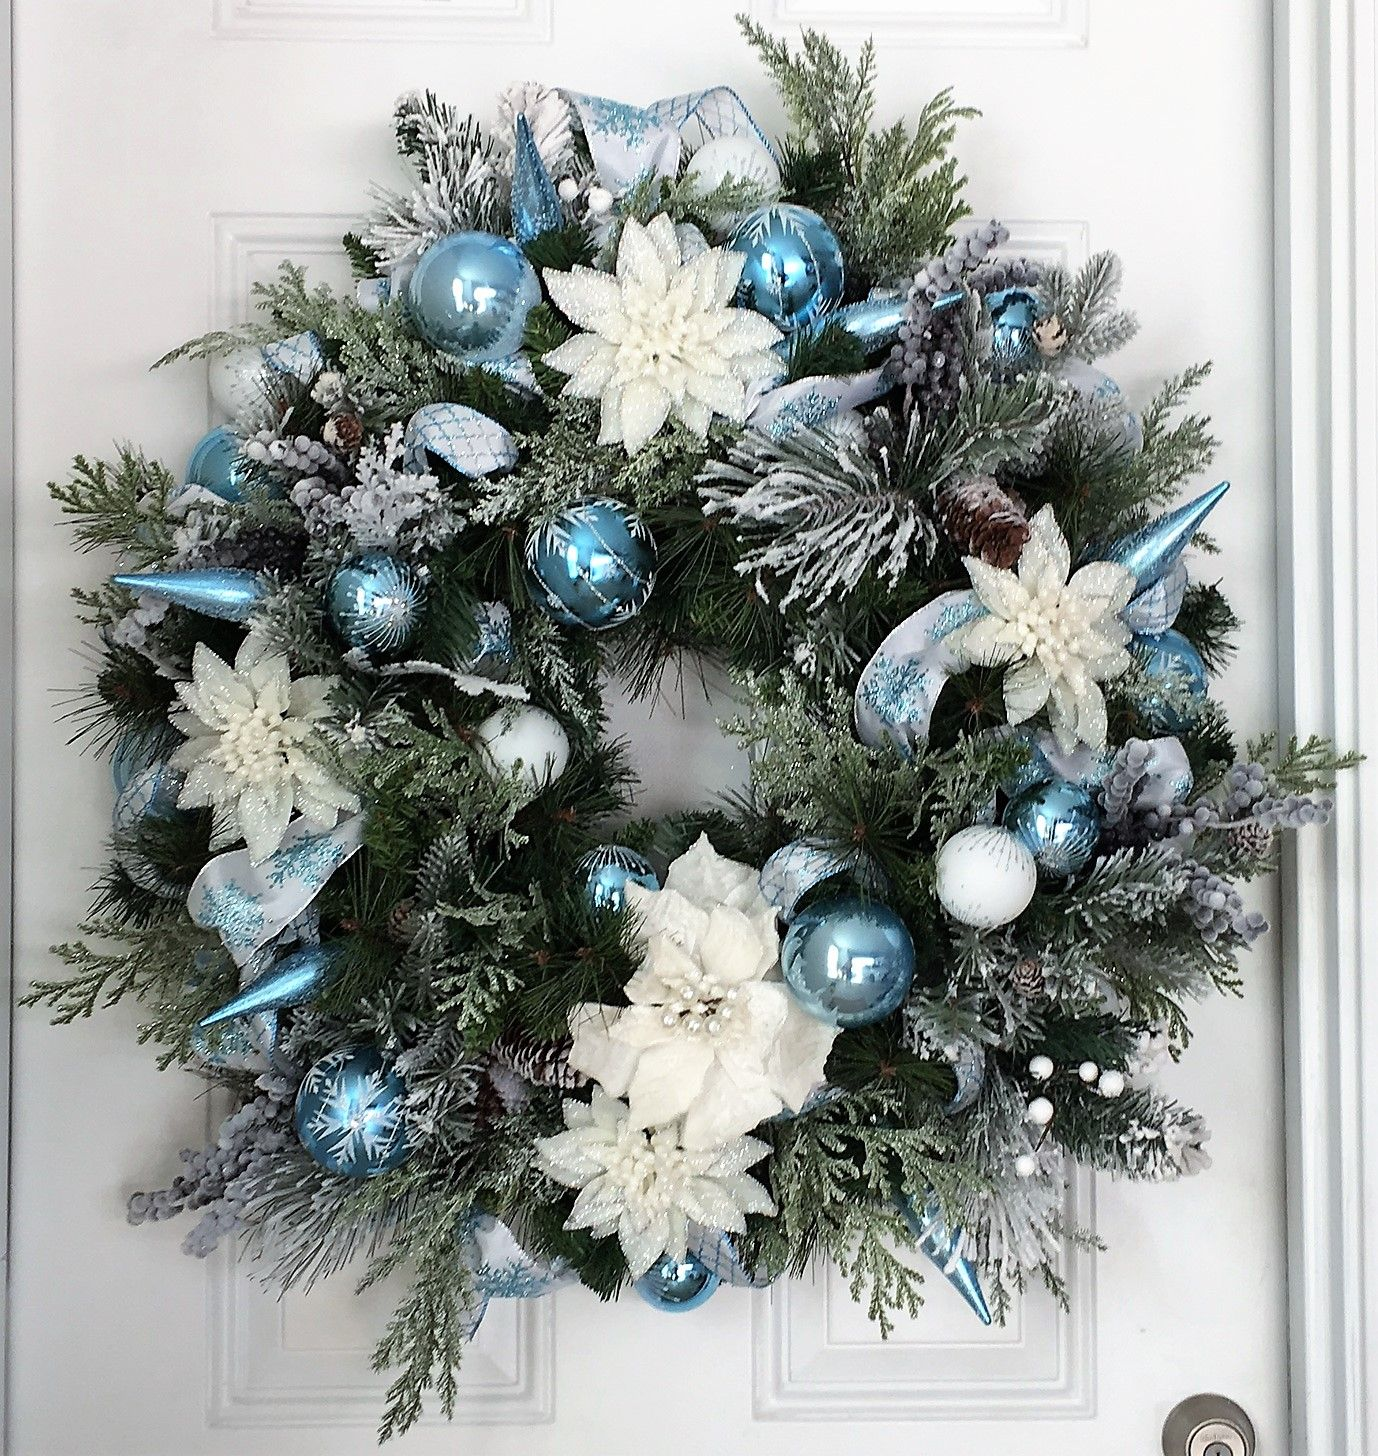 28 Christmas Garland Wreath With A Touch Of Snow Filled With Silver